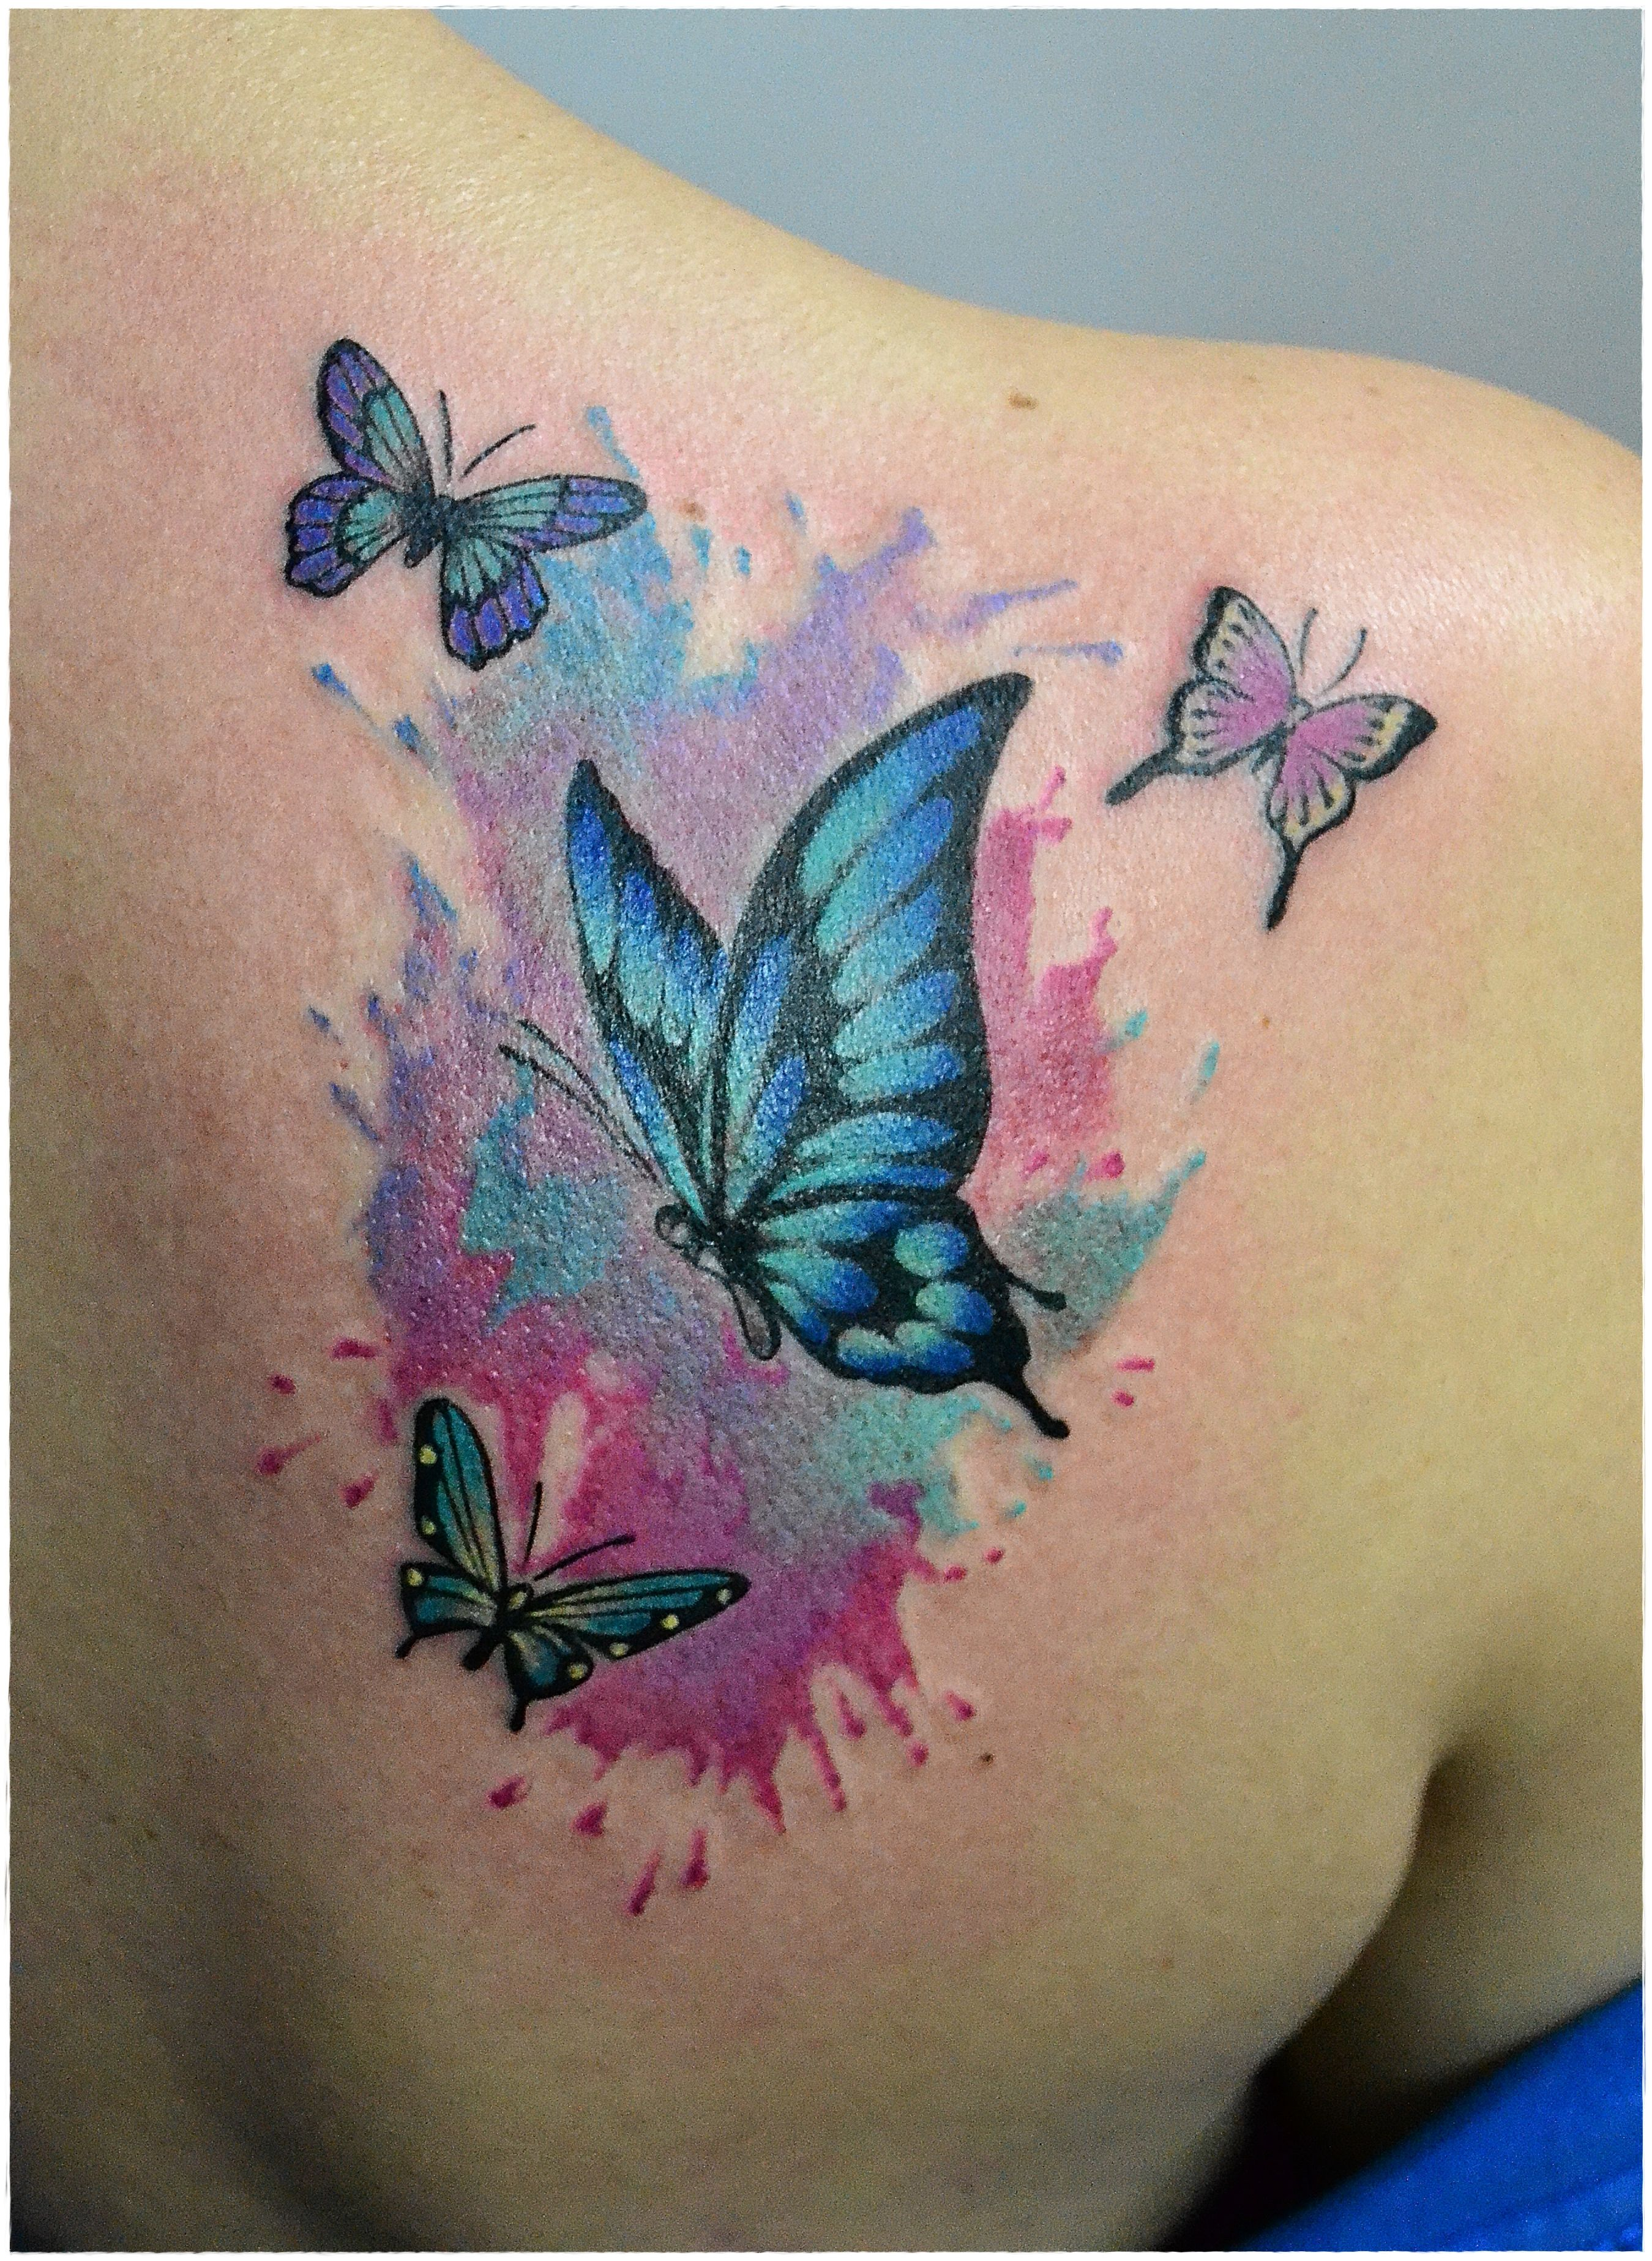 Watercolor Flower Moth Tattoo My Precious Ink: Butterfly Tattoos For Women